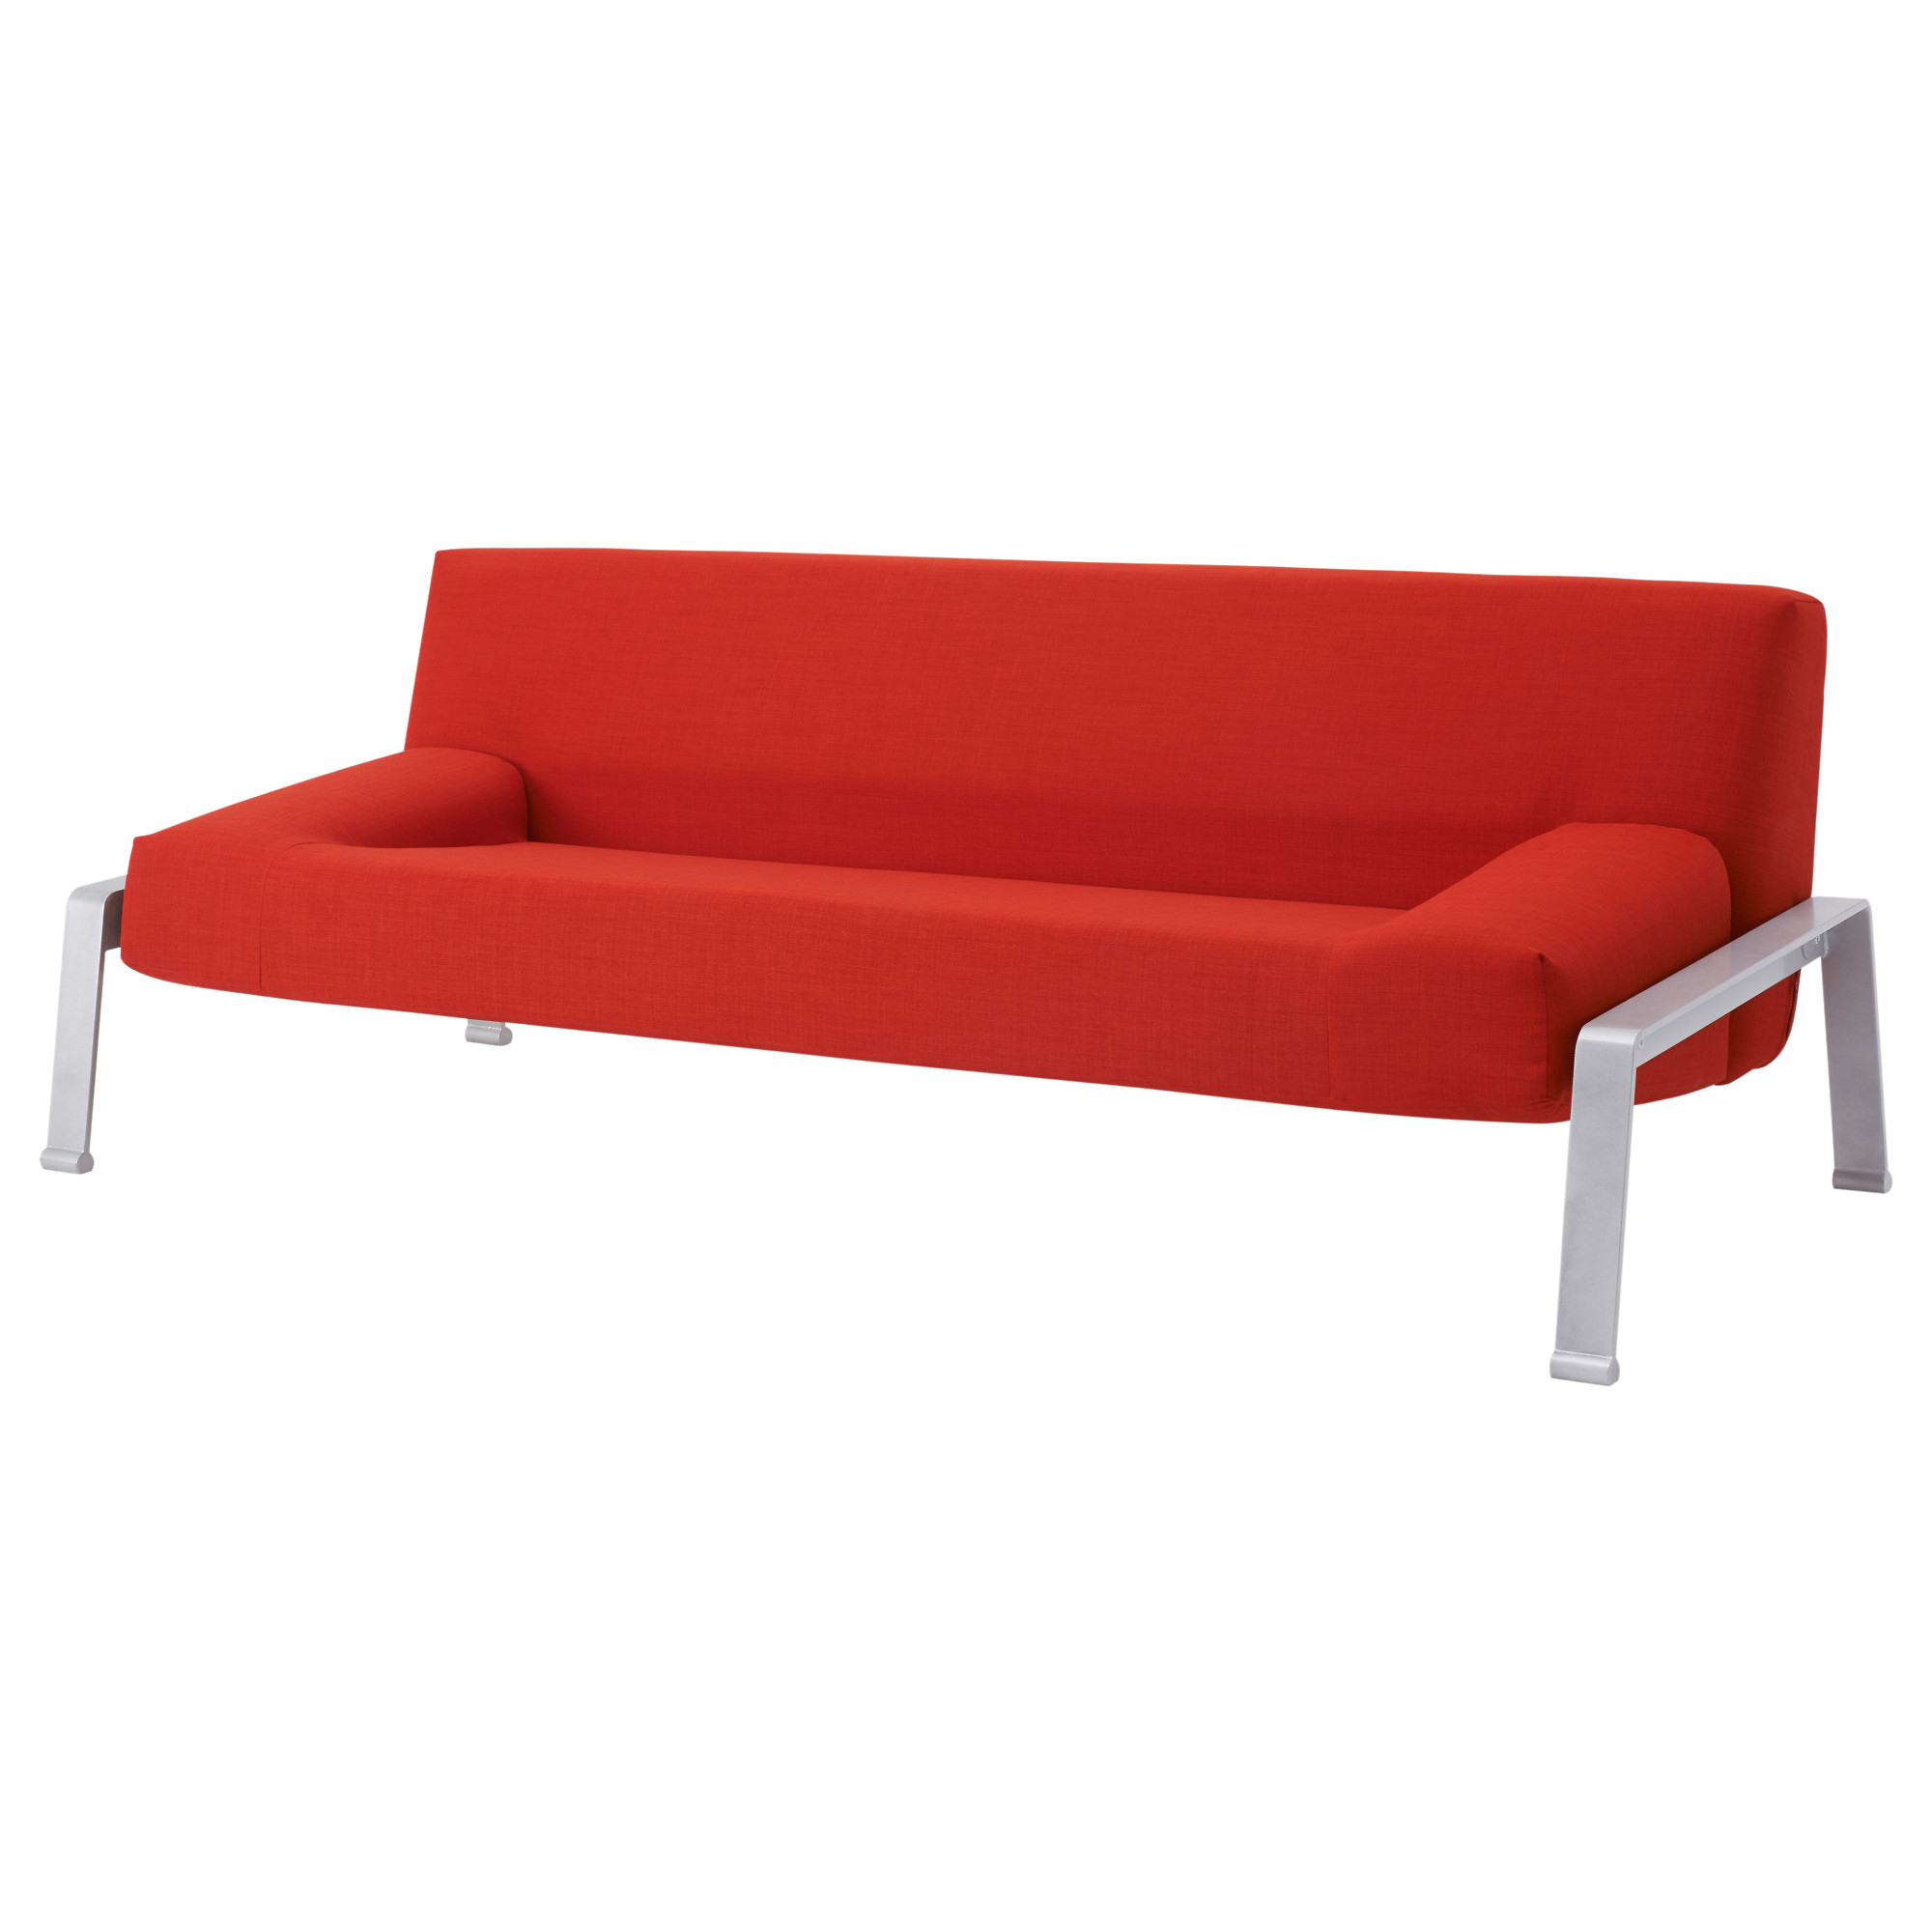 Furniture: Sleeper Chair Ikea With Different Styles And Fabrics To Pertaining To Ikea Sofa Chairs (Image 9 of 25)